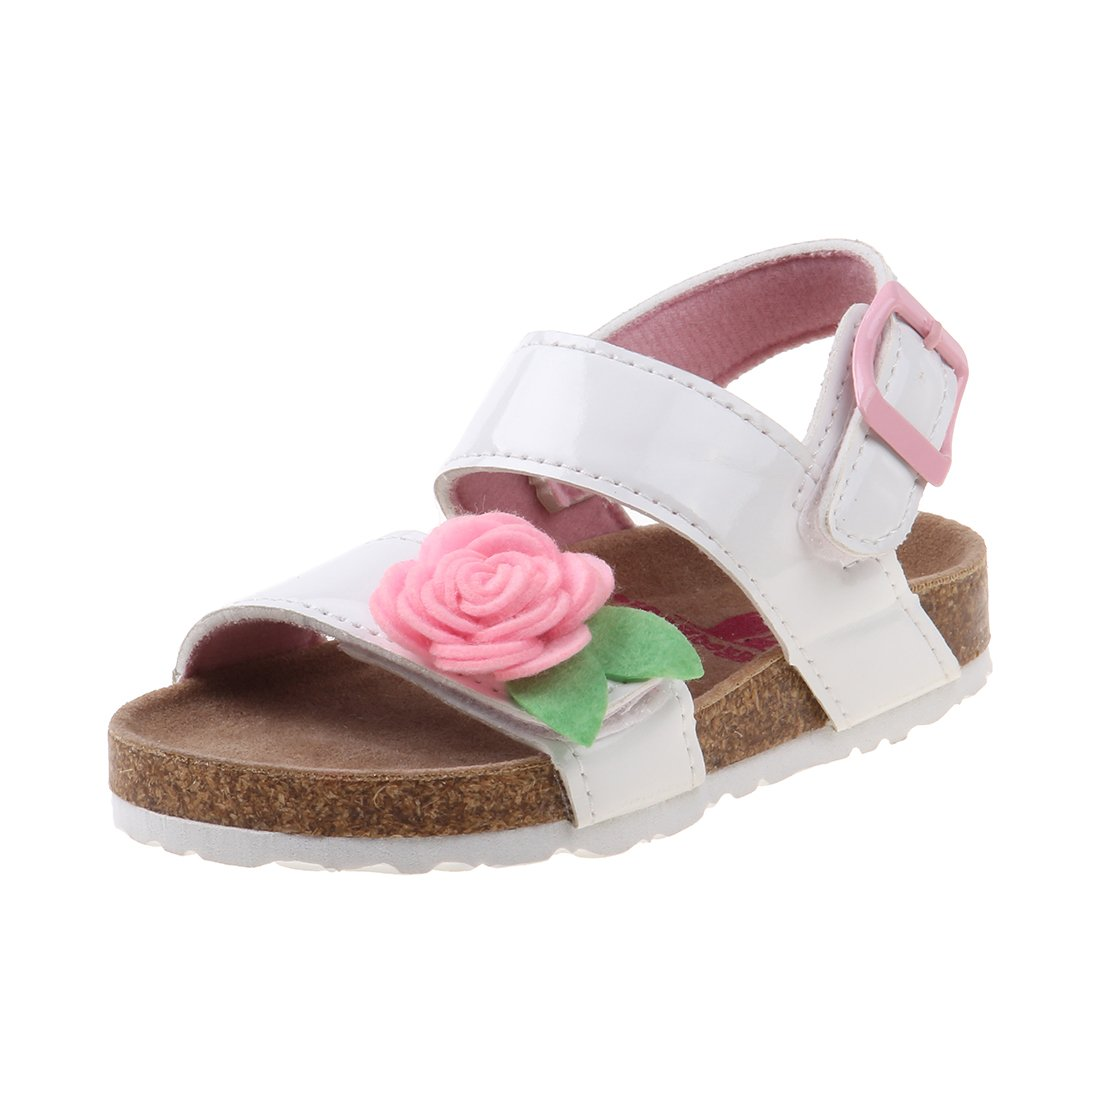 Rugged Bear Girls Cork Sandal with Flower, White Patent, 10 M US Toddler'